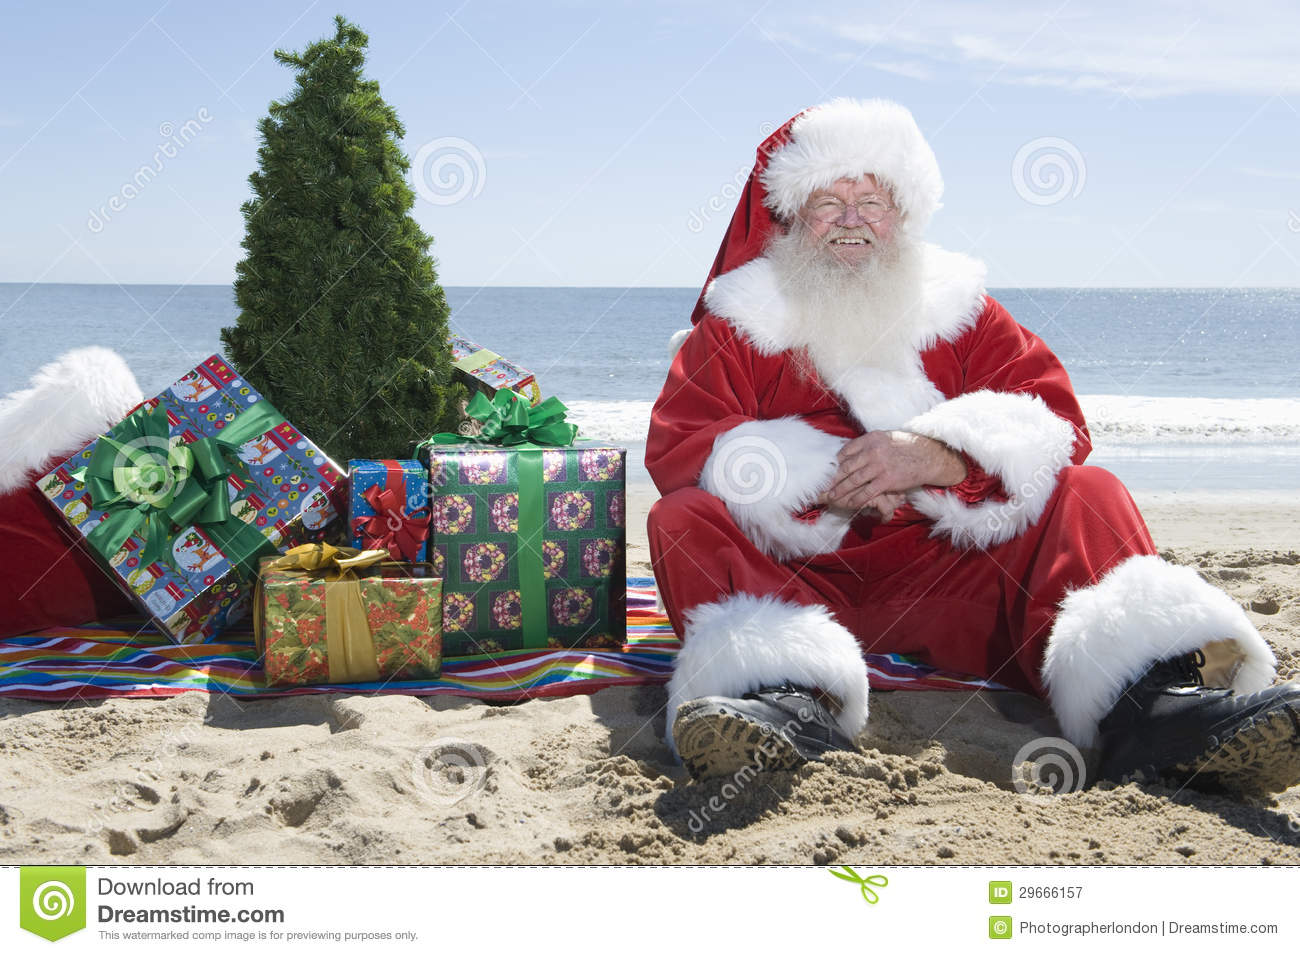 Santa Claus With Presents And Tree-Zitting op Strand